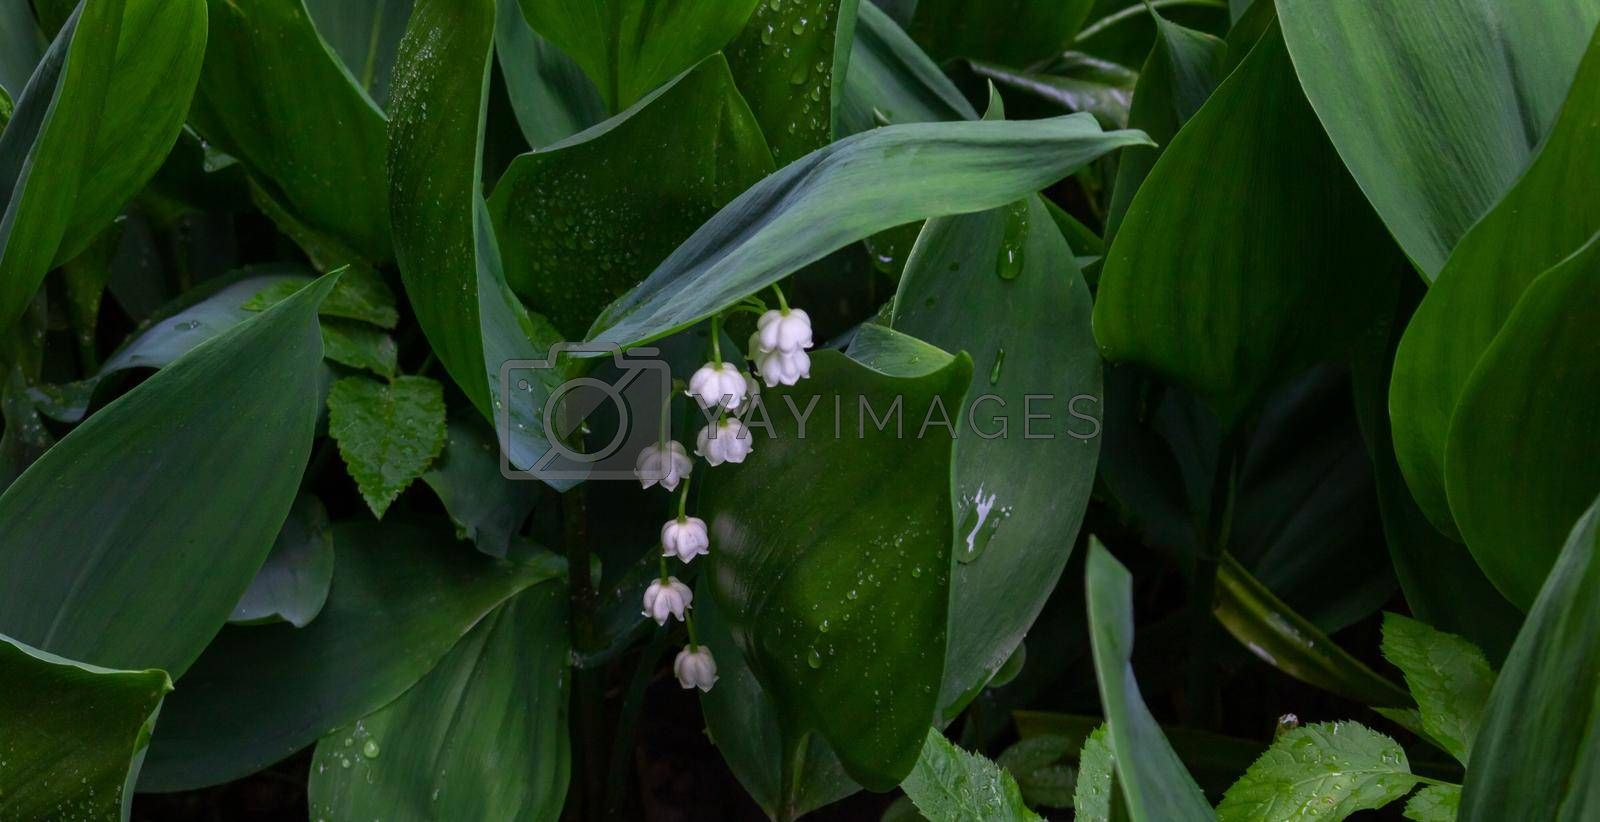 White flowers of the May lily of the valley on a background of green leaves.